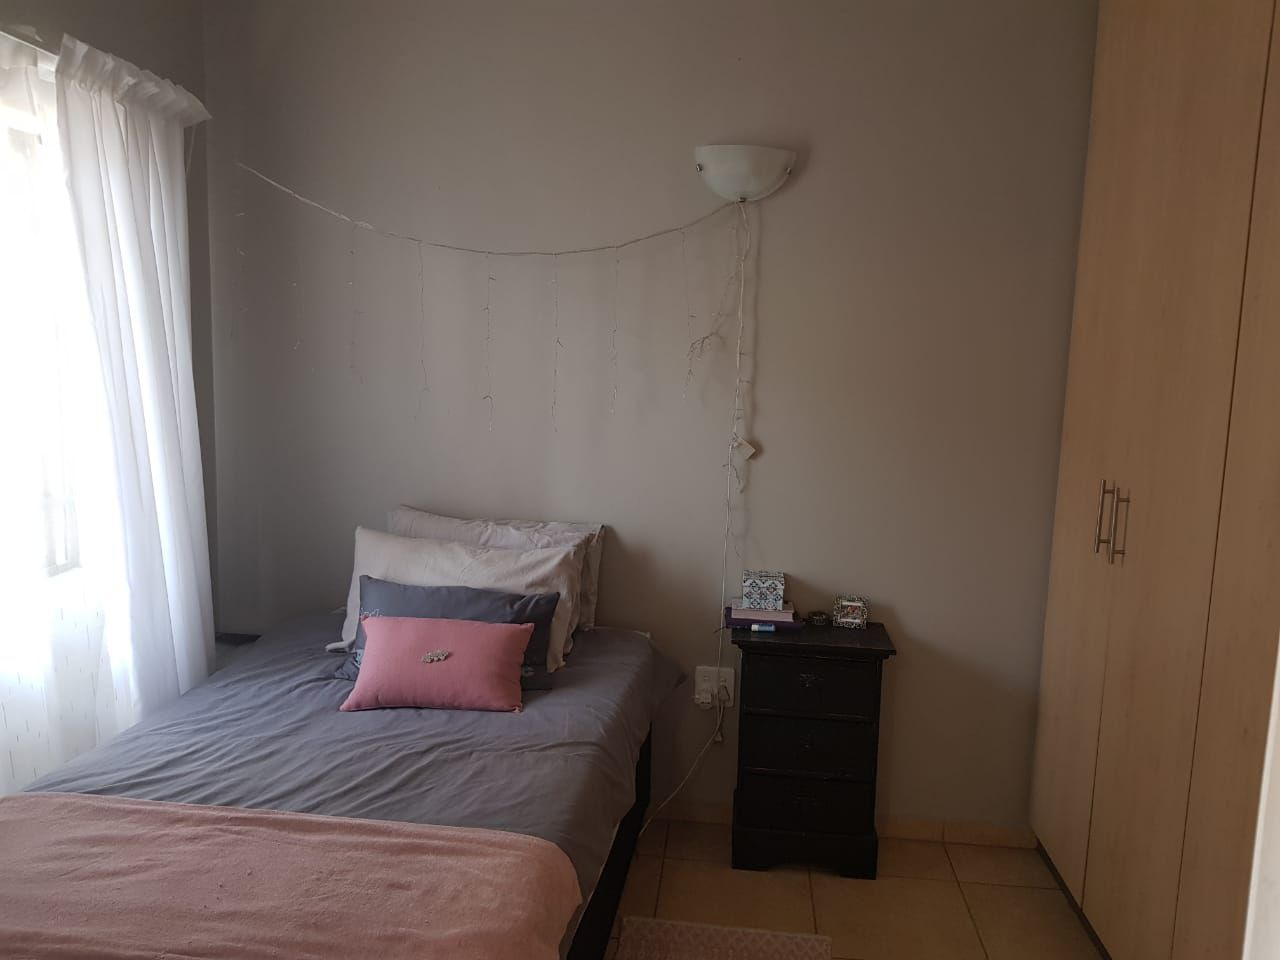 Apartment in Bult - WhatsApp Image 2020-02-05 at 10.16.50.jpeg